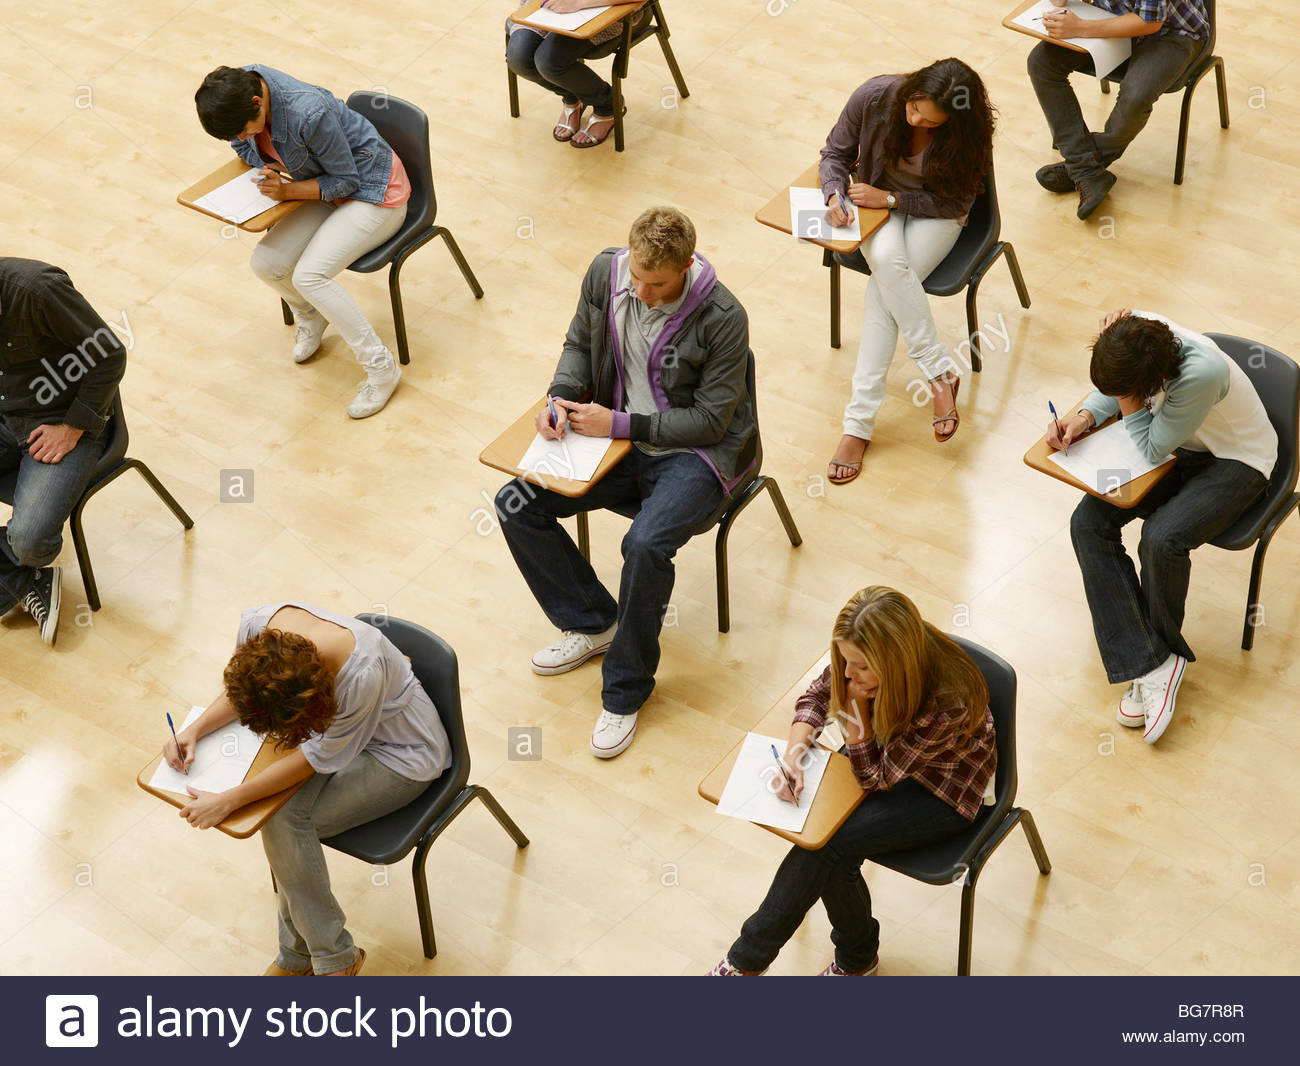 College students taking test in classroom - Stock Image